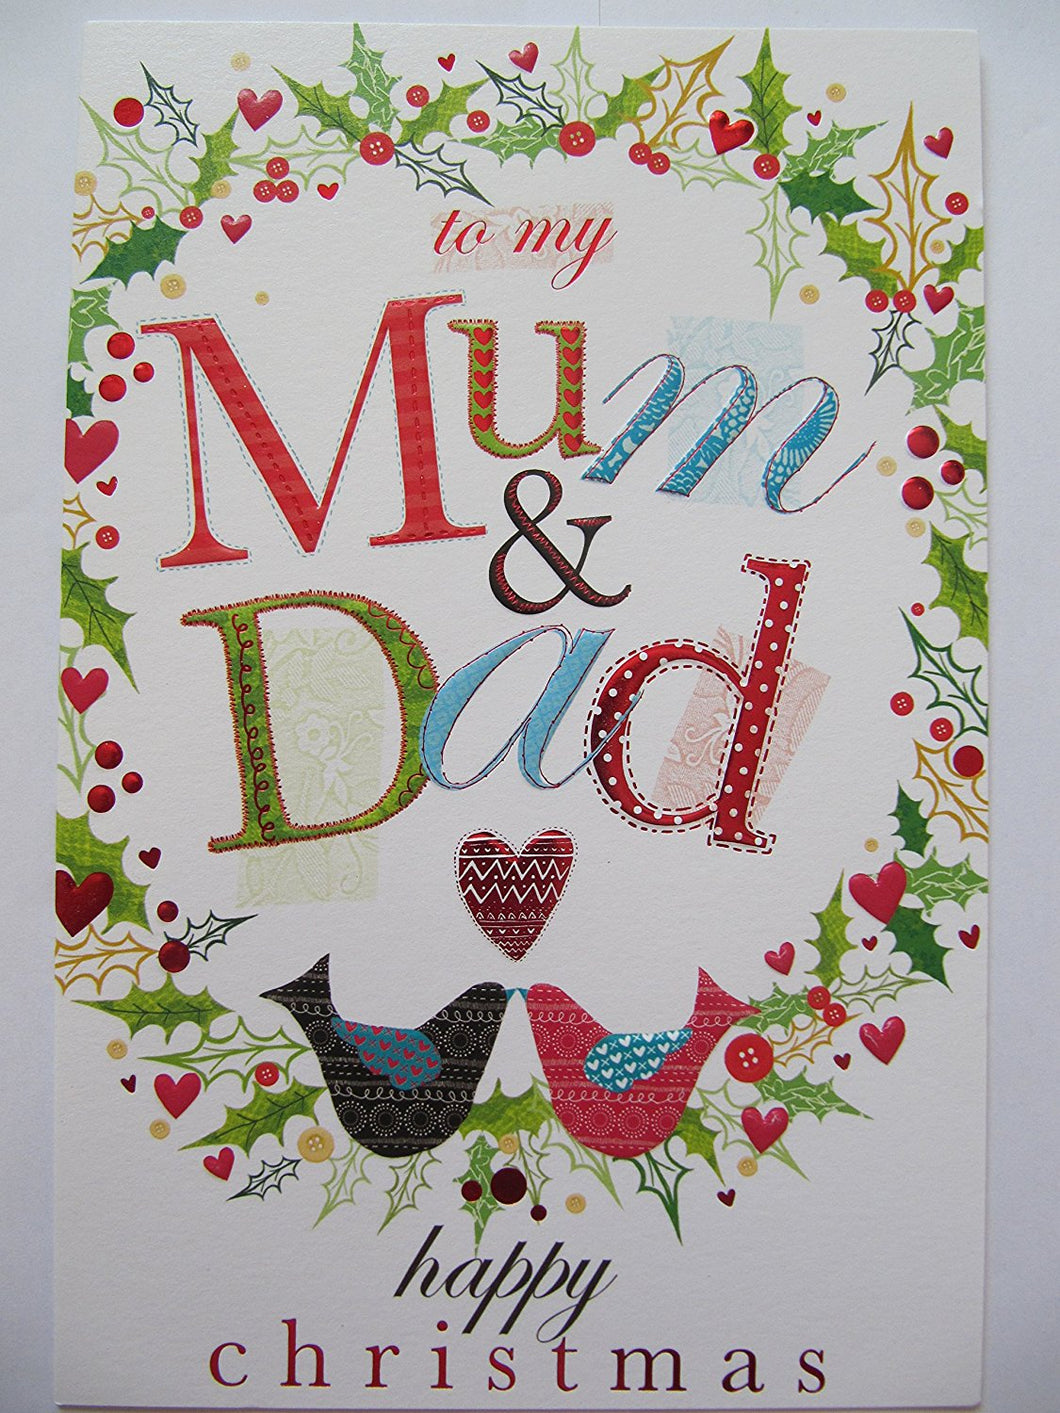 COLOURFUL BIRDS AND FLOWERS TO MY MUM AND DAD CHRISTMAS GREETING CARD